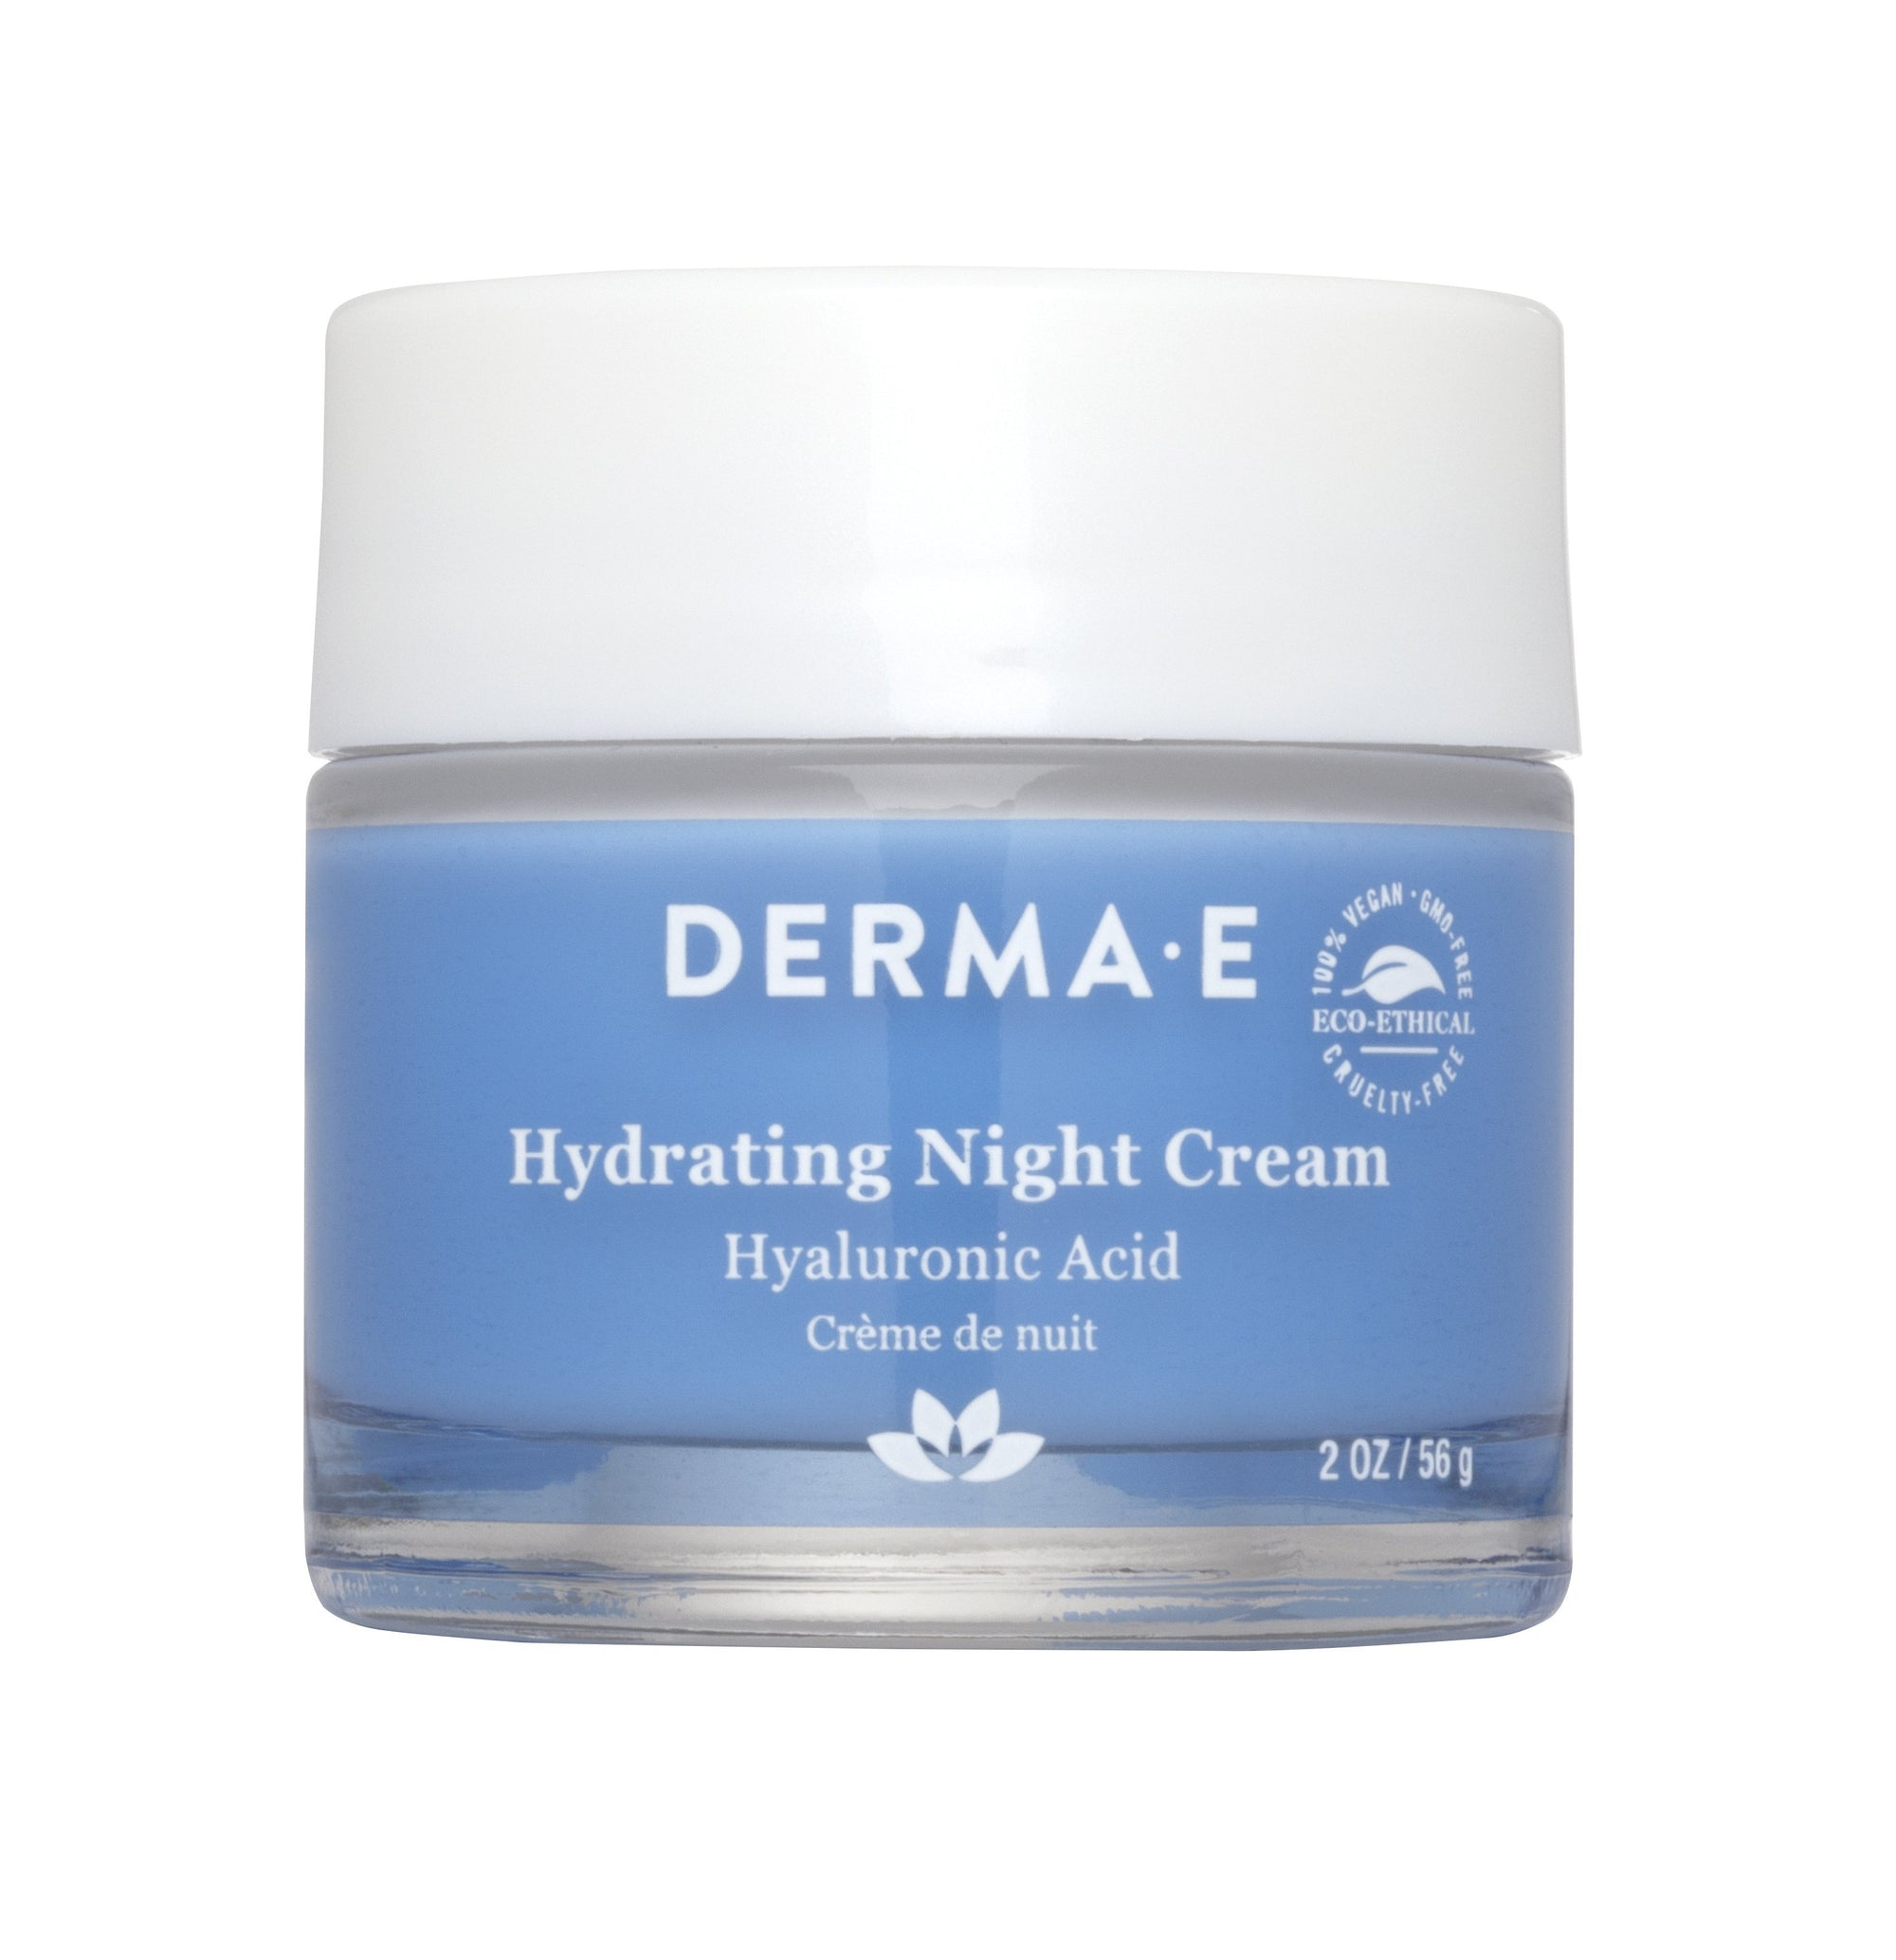 Beauty & Skin Care,Gluten Free,Vegan,Vegetarian,Non GMO - Derma E - Hydrating Night Crème With Hyaluronic Acid